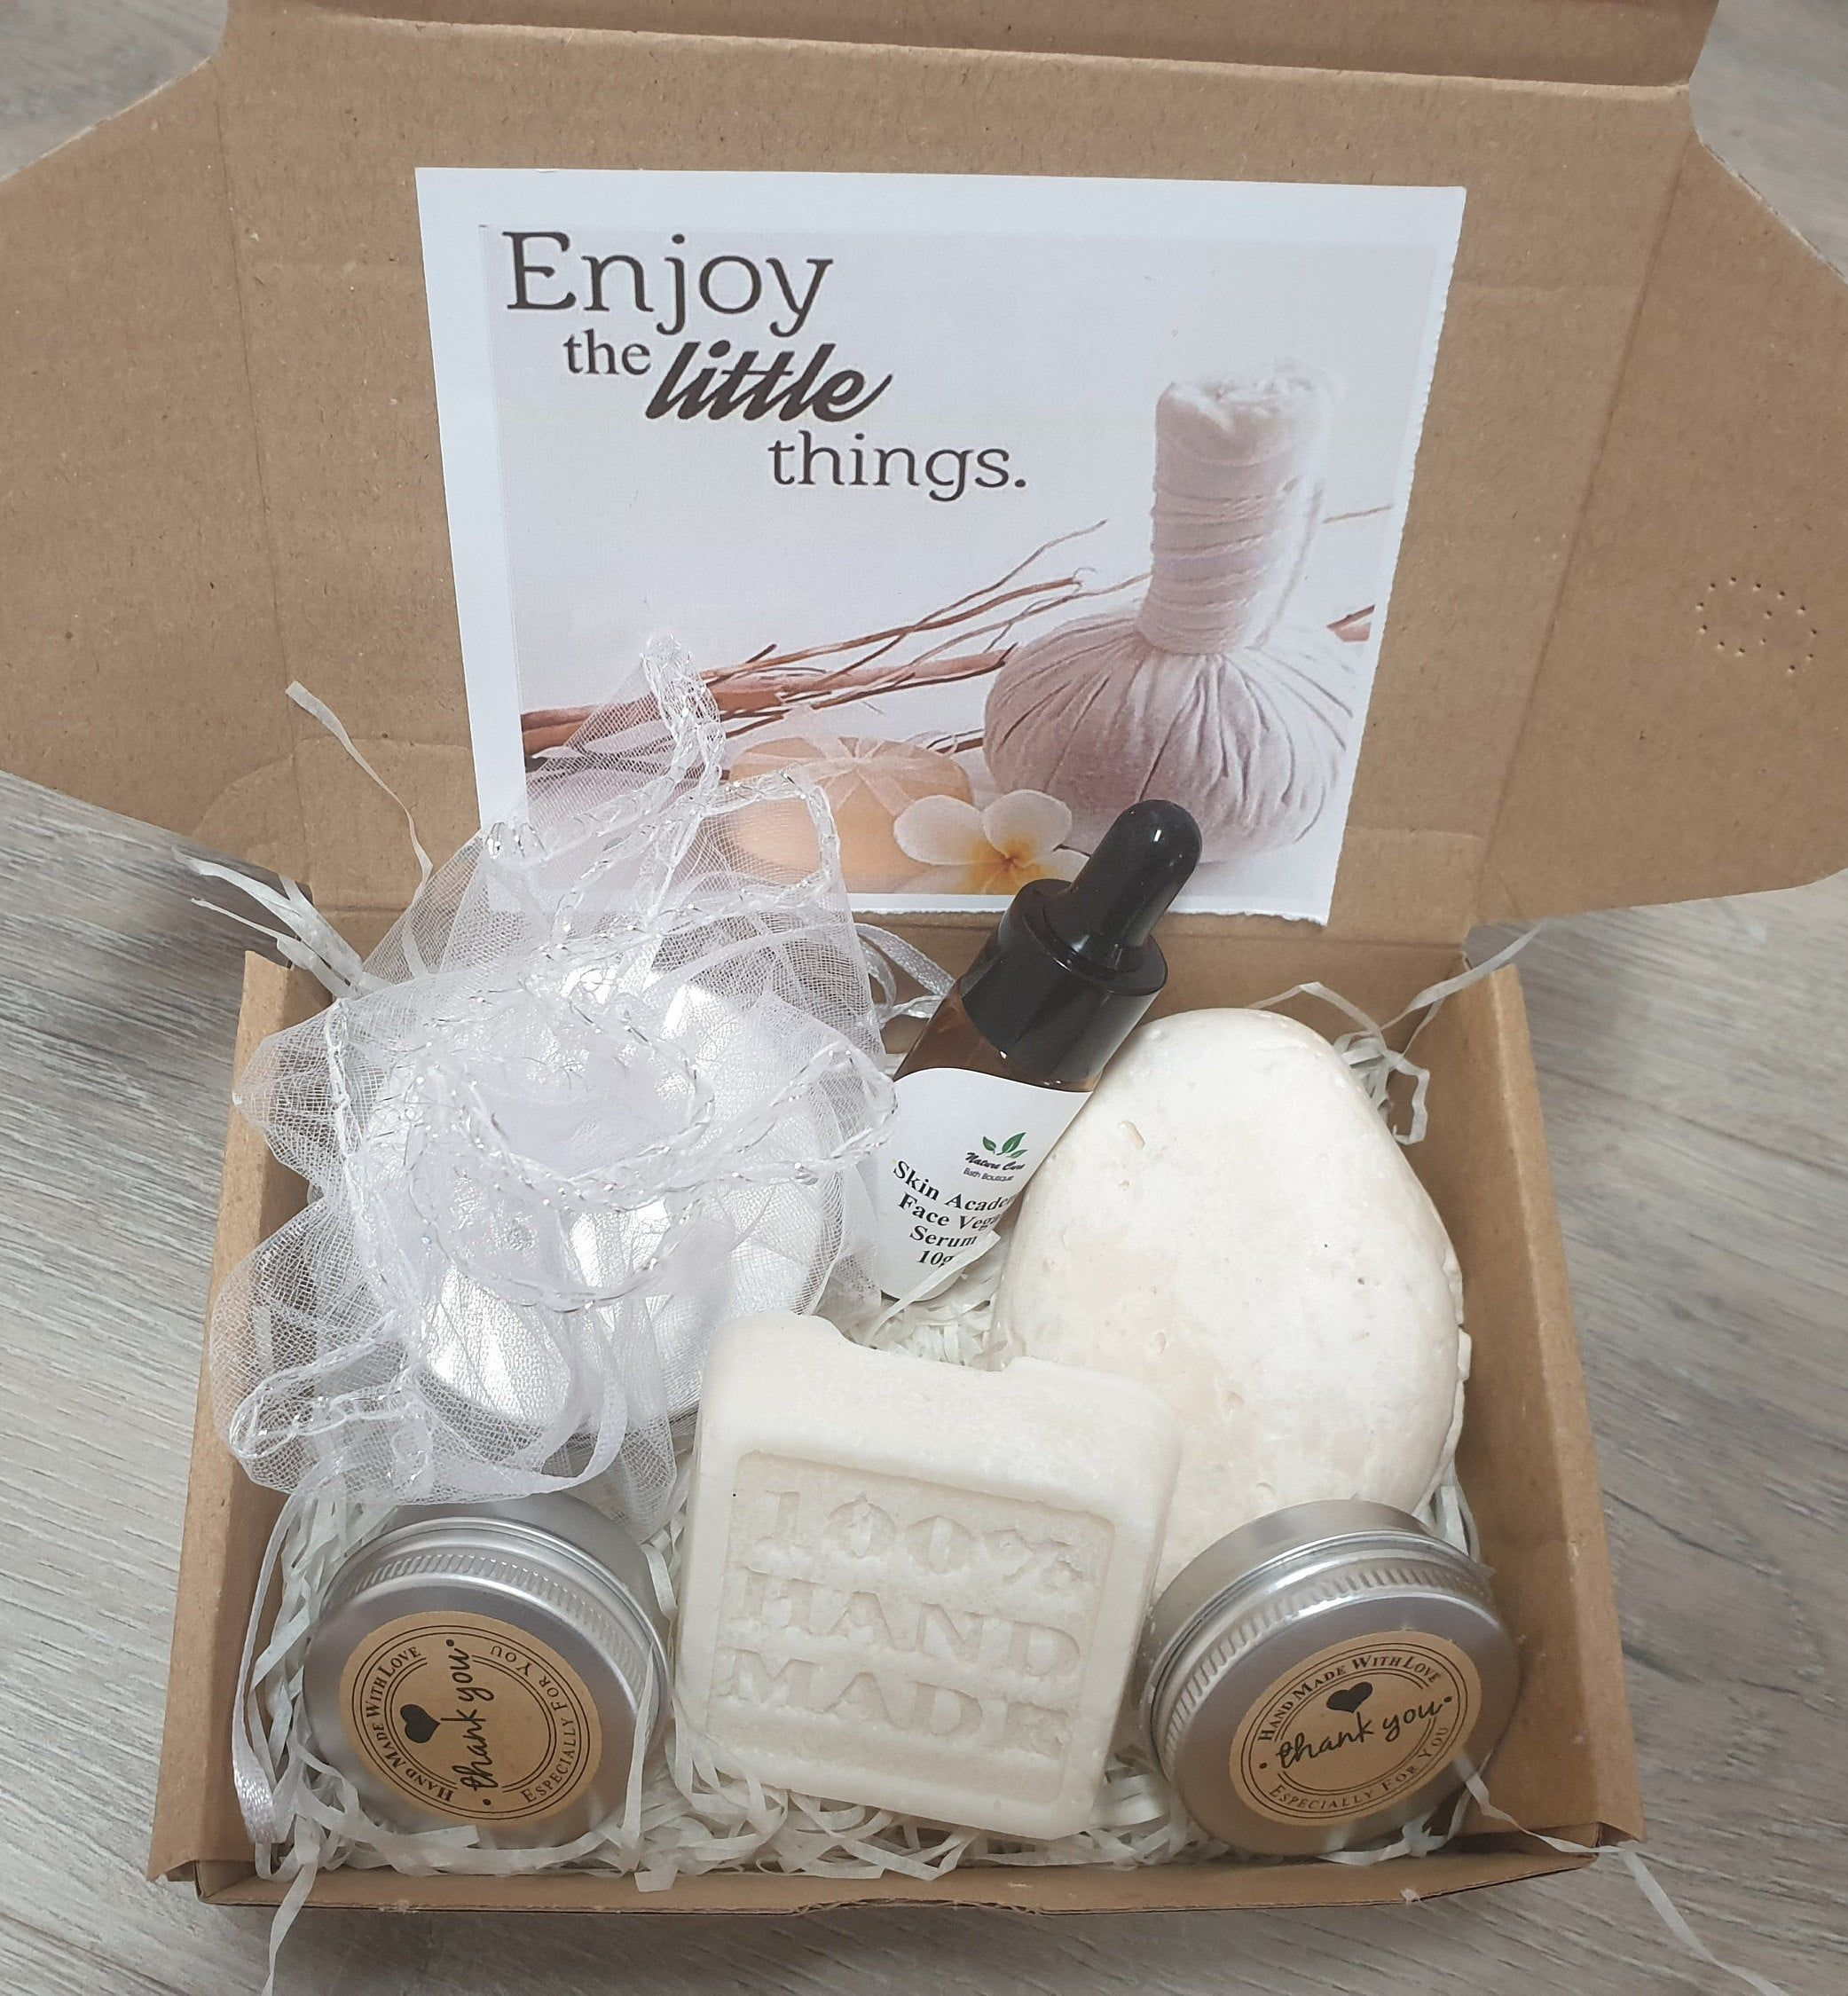 Small Vegan Spa Gift Etsy In 2020 Spa Gifts Spa Gift Box Vegan Gifts